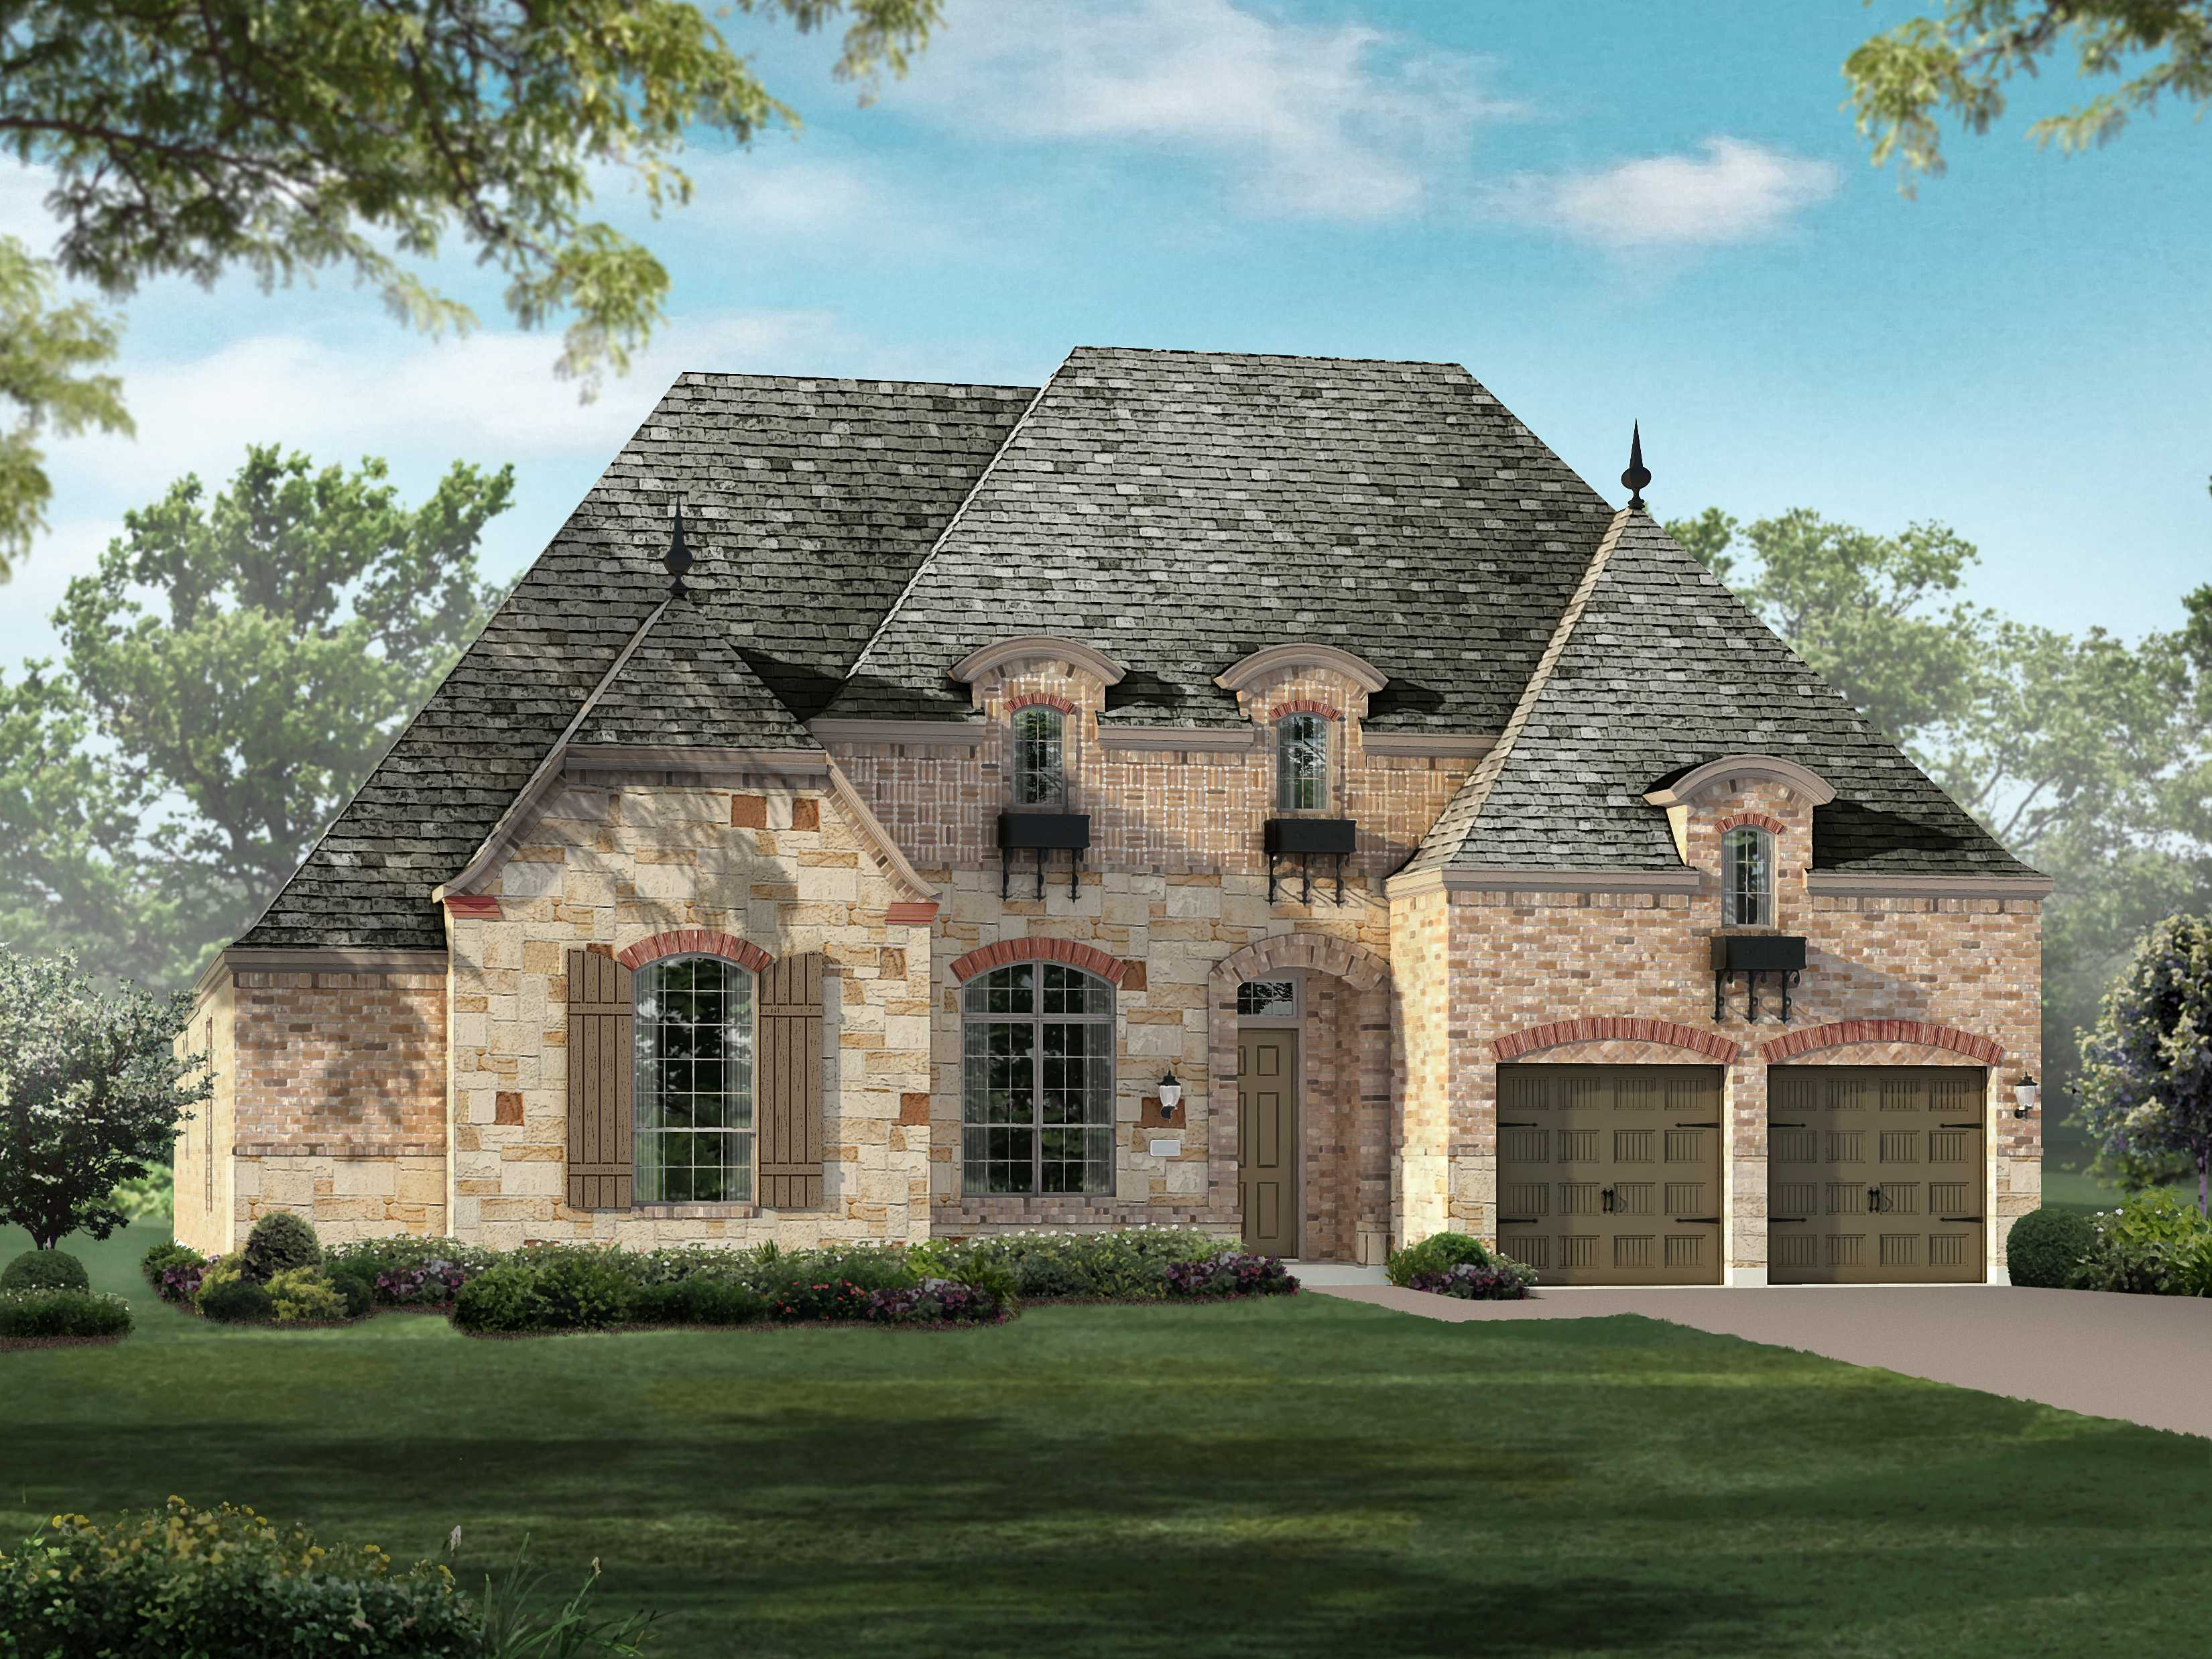 20258218 161025?width=460&height=307&scale=upscalecanvas&format=jpg edgestone at legacy in frisco, tx, new homes & floor plans by,Highland Homes Floor Plans Texas